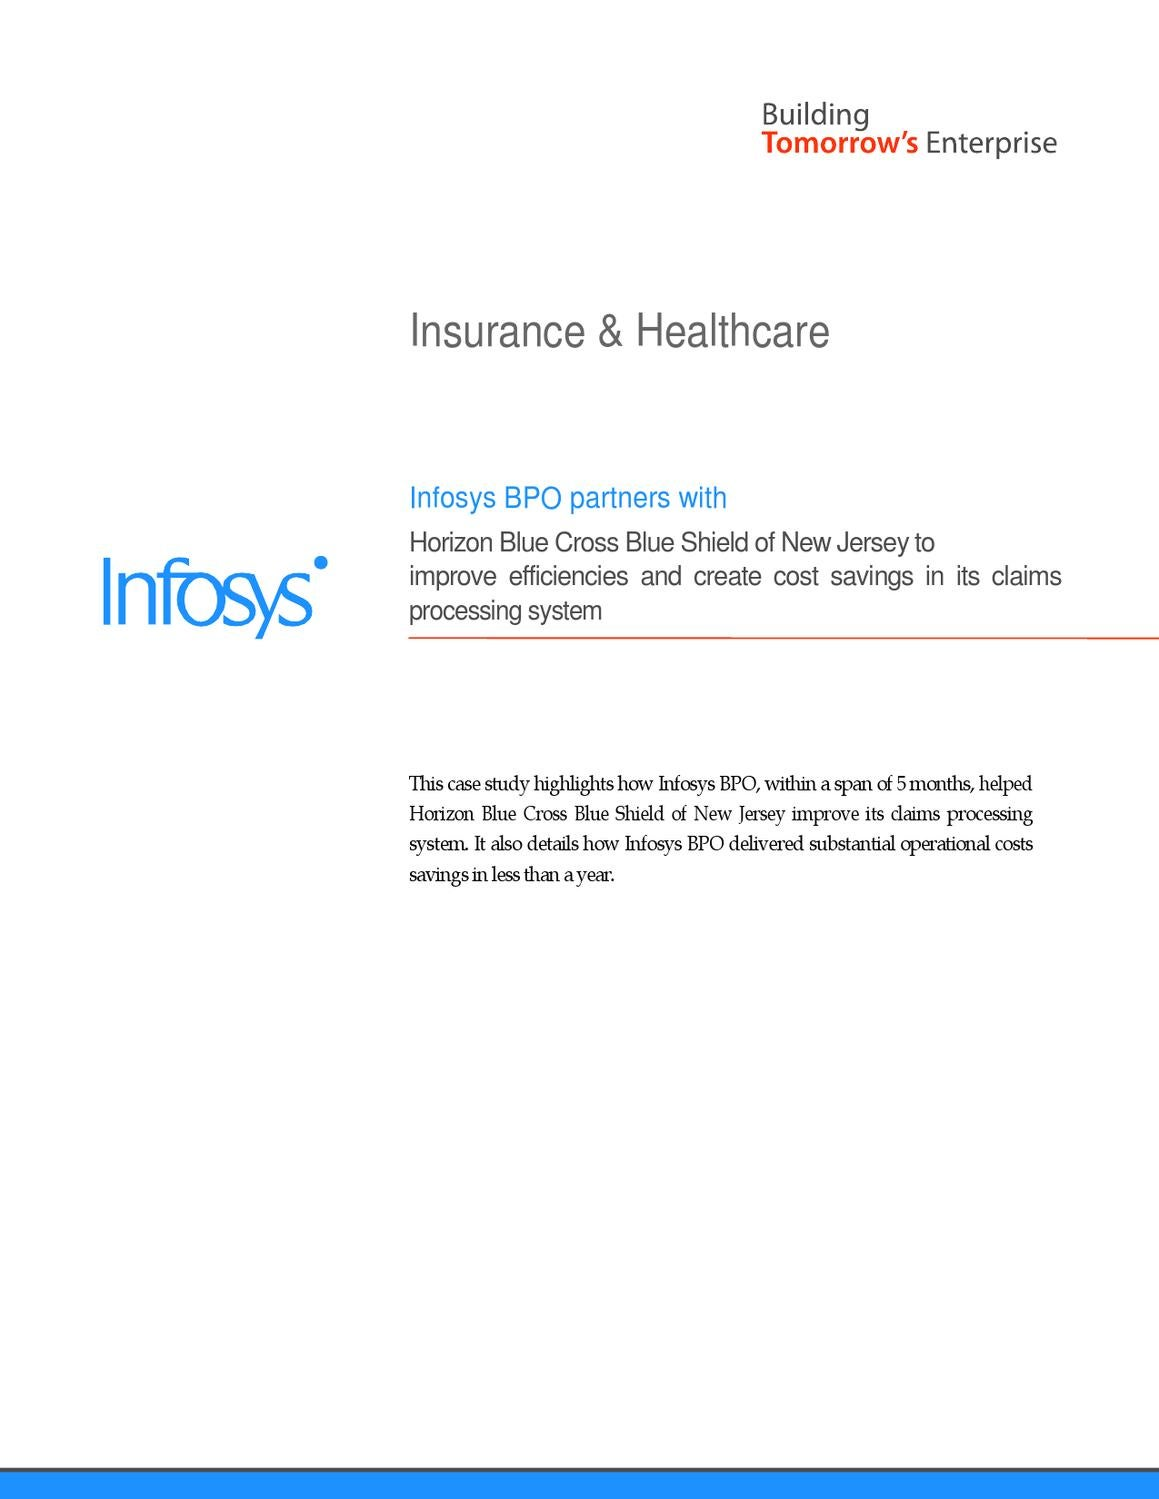 Infosys - Claims Processing System   BPO Services by Infosys